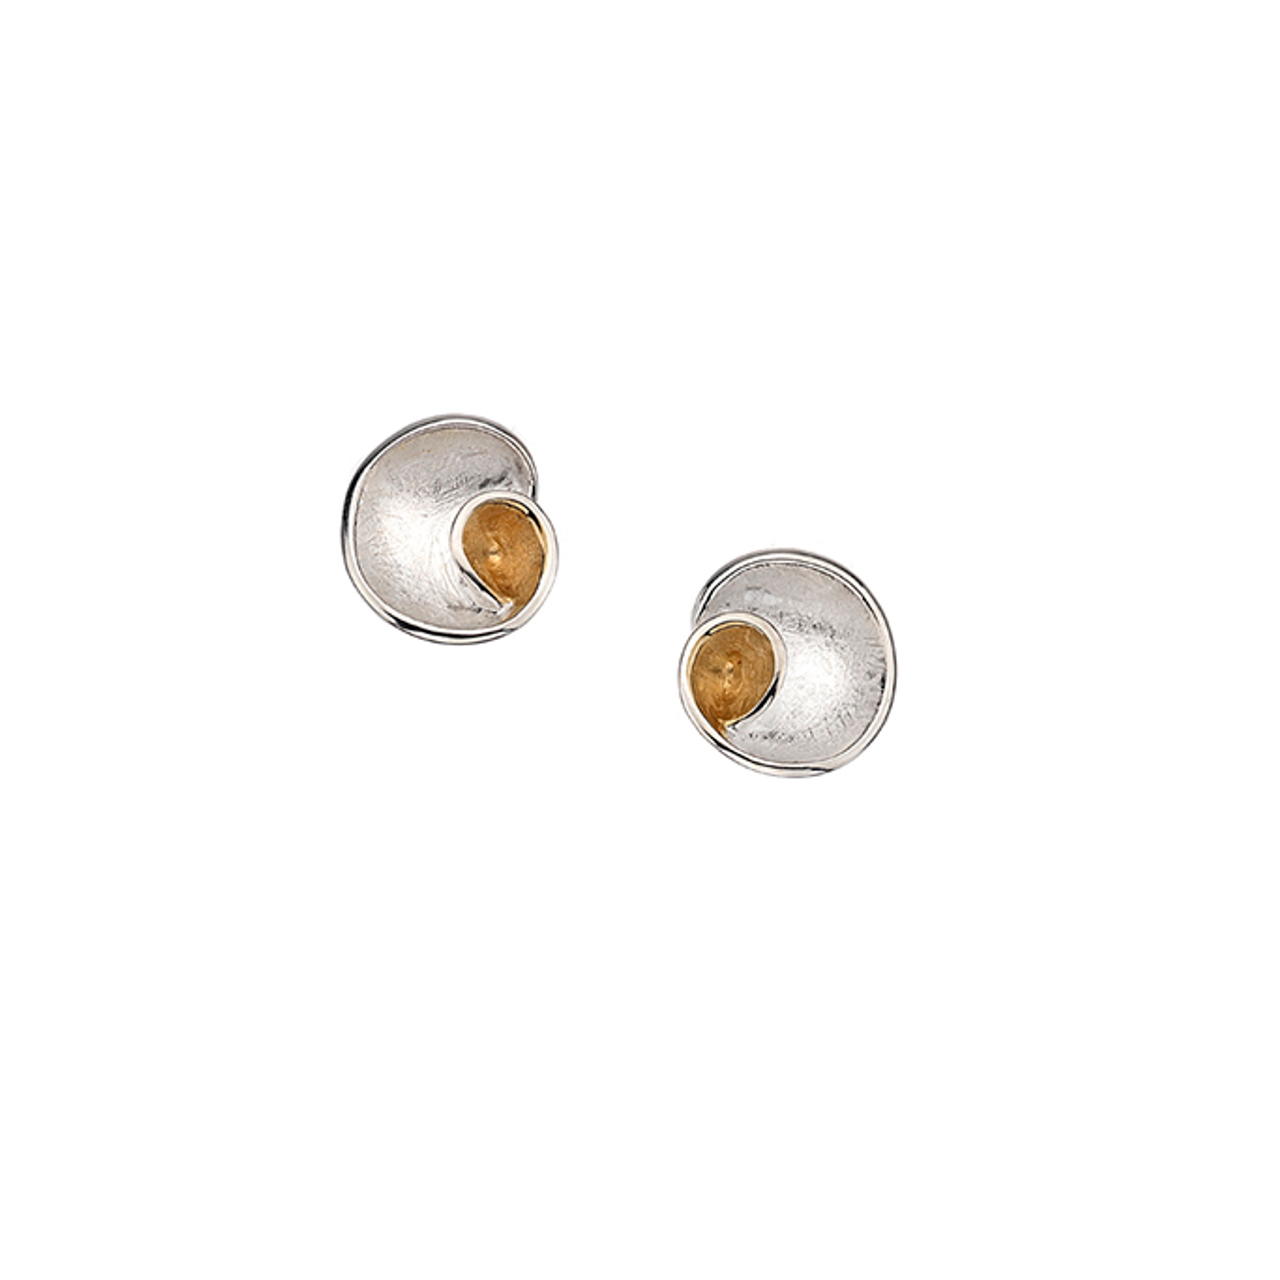 Silver & Gold plated swirl circle Stud Earrings.